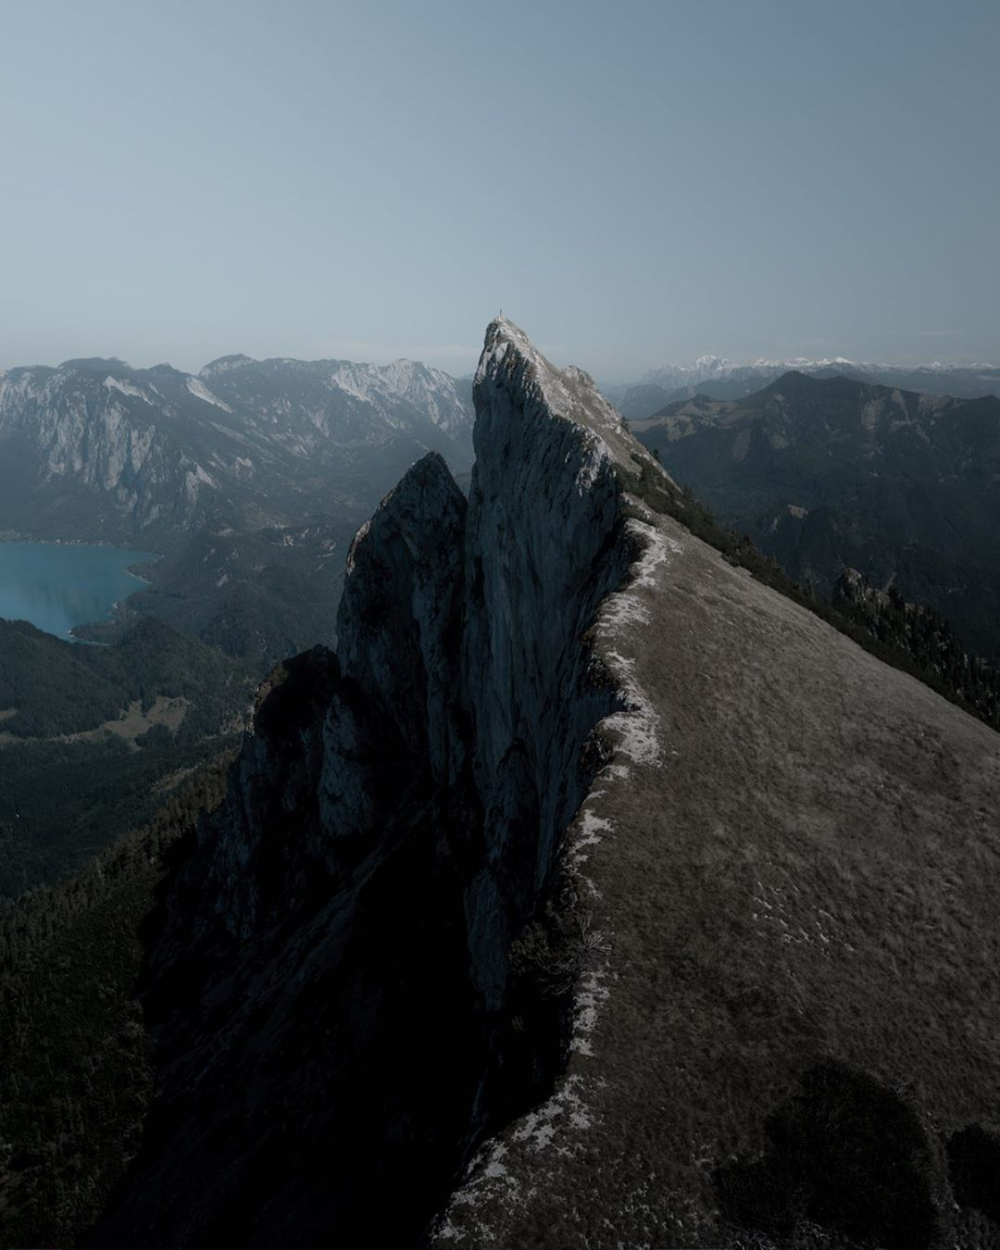 Interview: Cinematic Drone Photos Capture Stunning Views of the World from Above